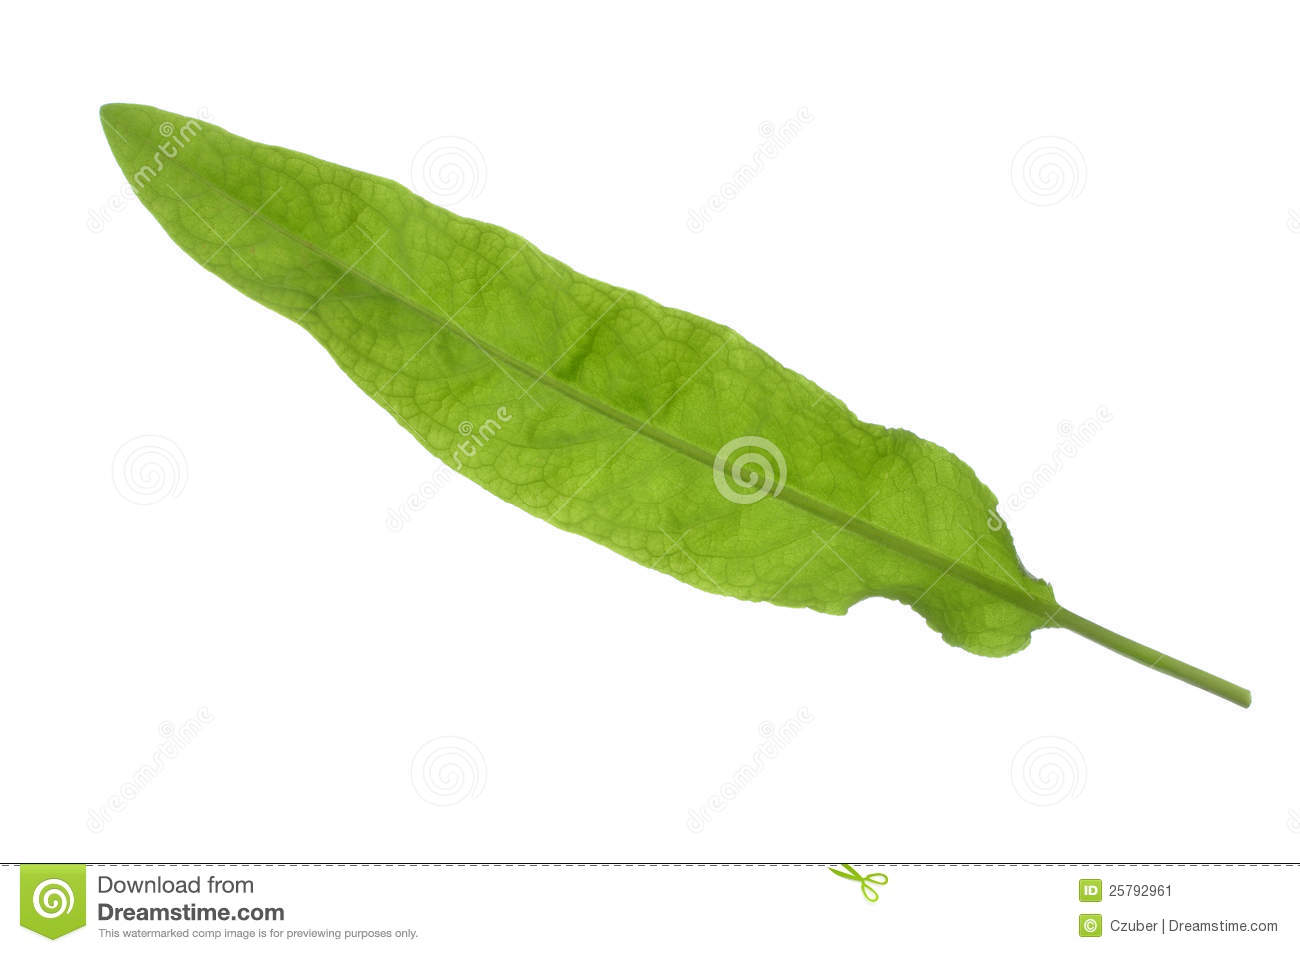 Rumex Dock Leaf Stock Image.